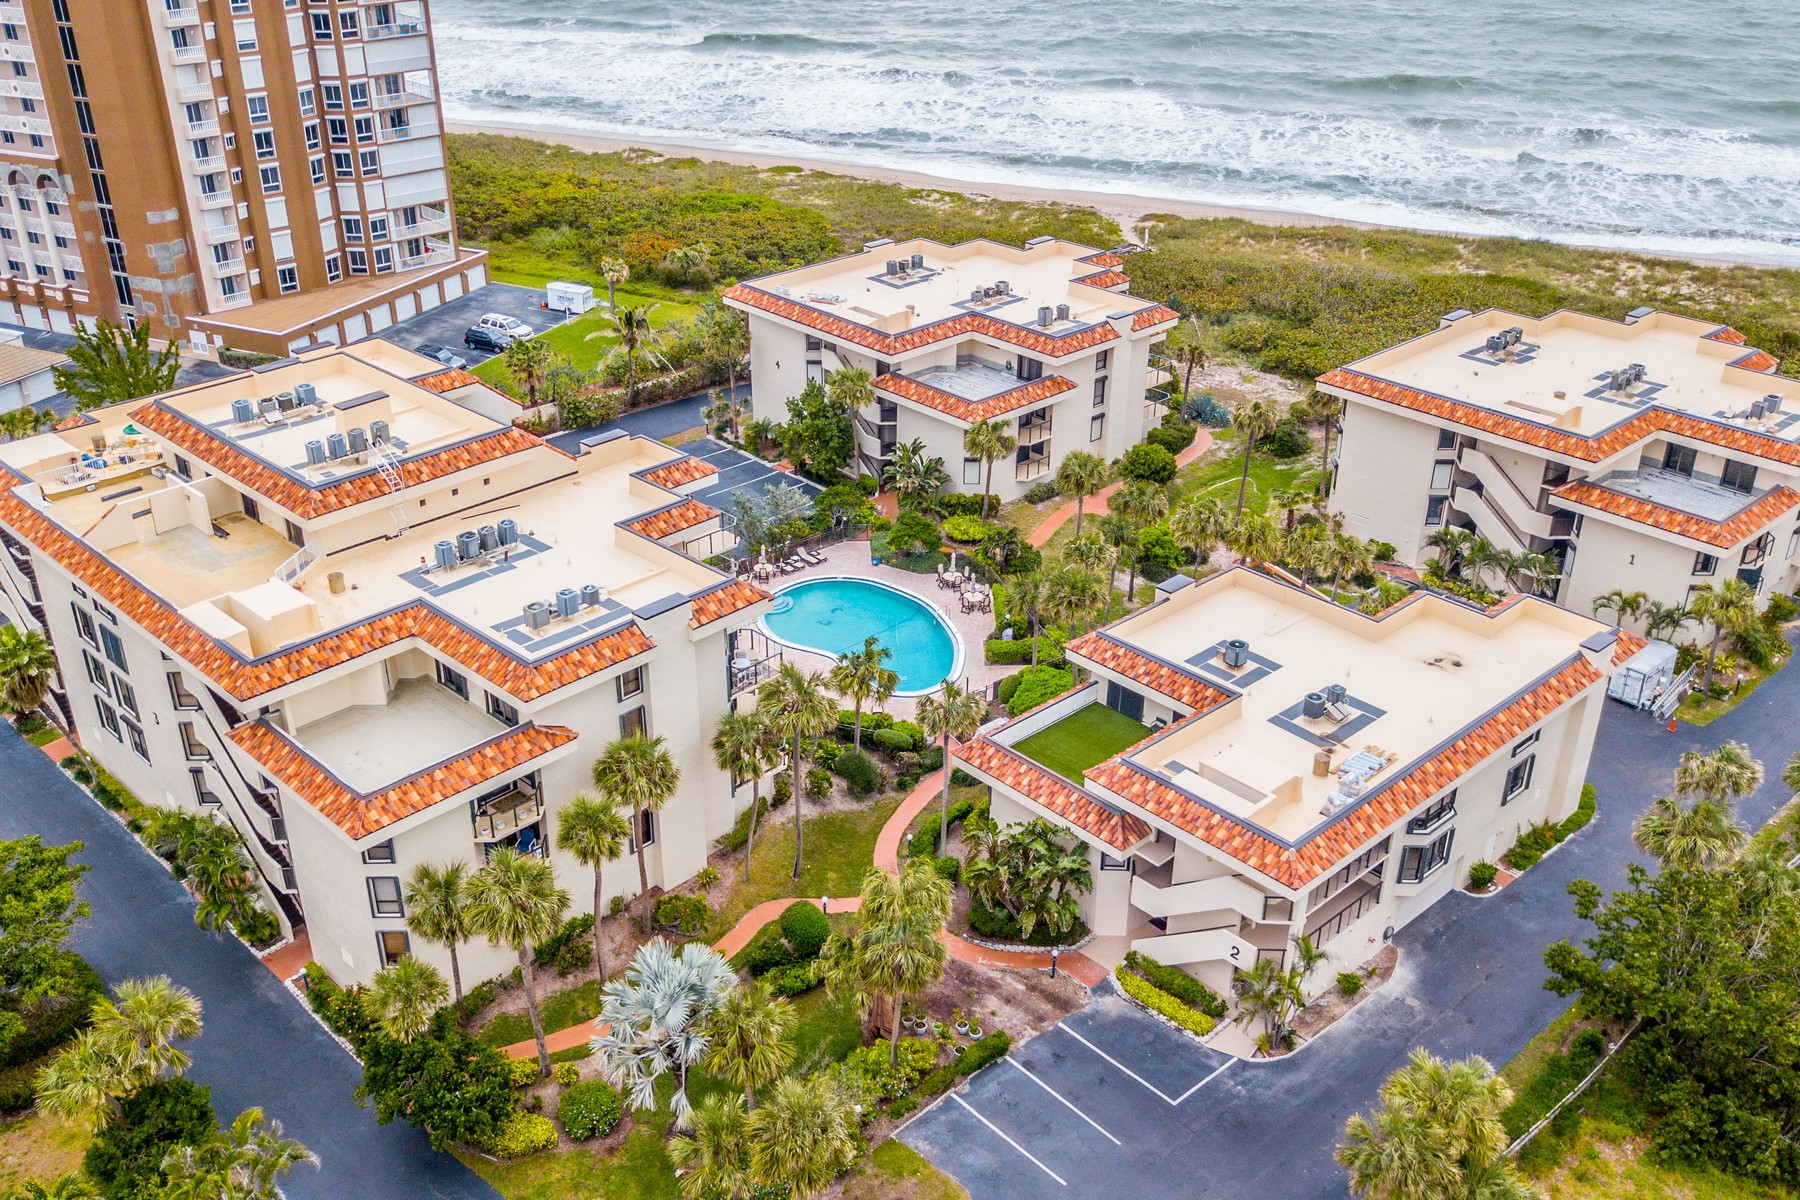 Condominium for Sale at Serene Oceanfront Condo at Treasure Cove Dunes 4100 N Hwy A1A #315 Fort Pierce, Florida 34950 United States